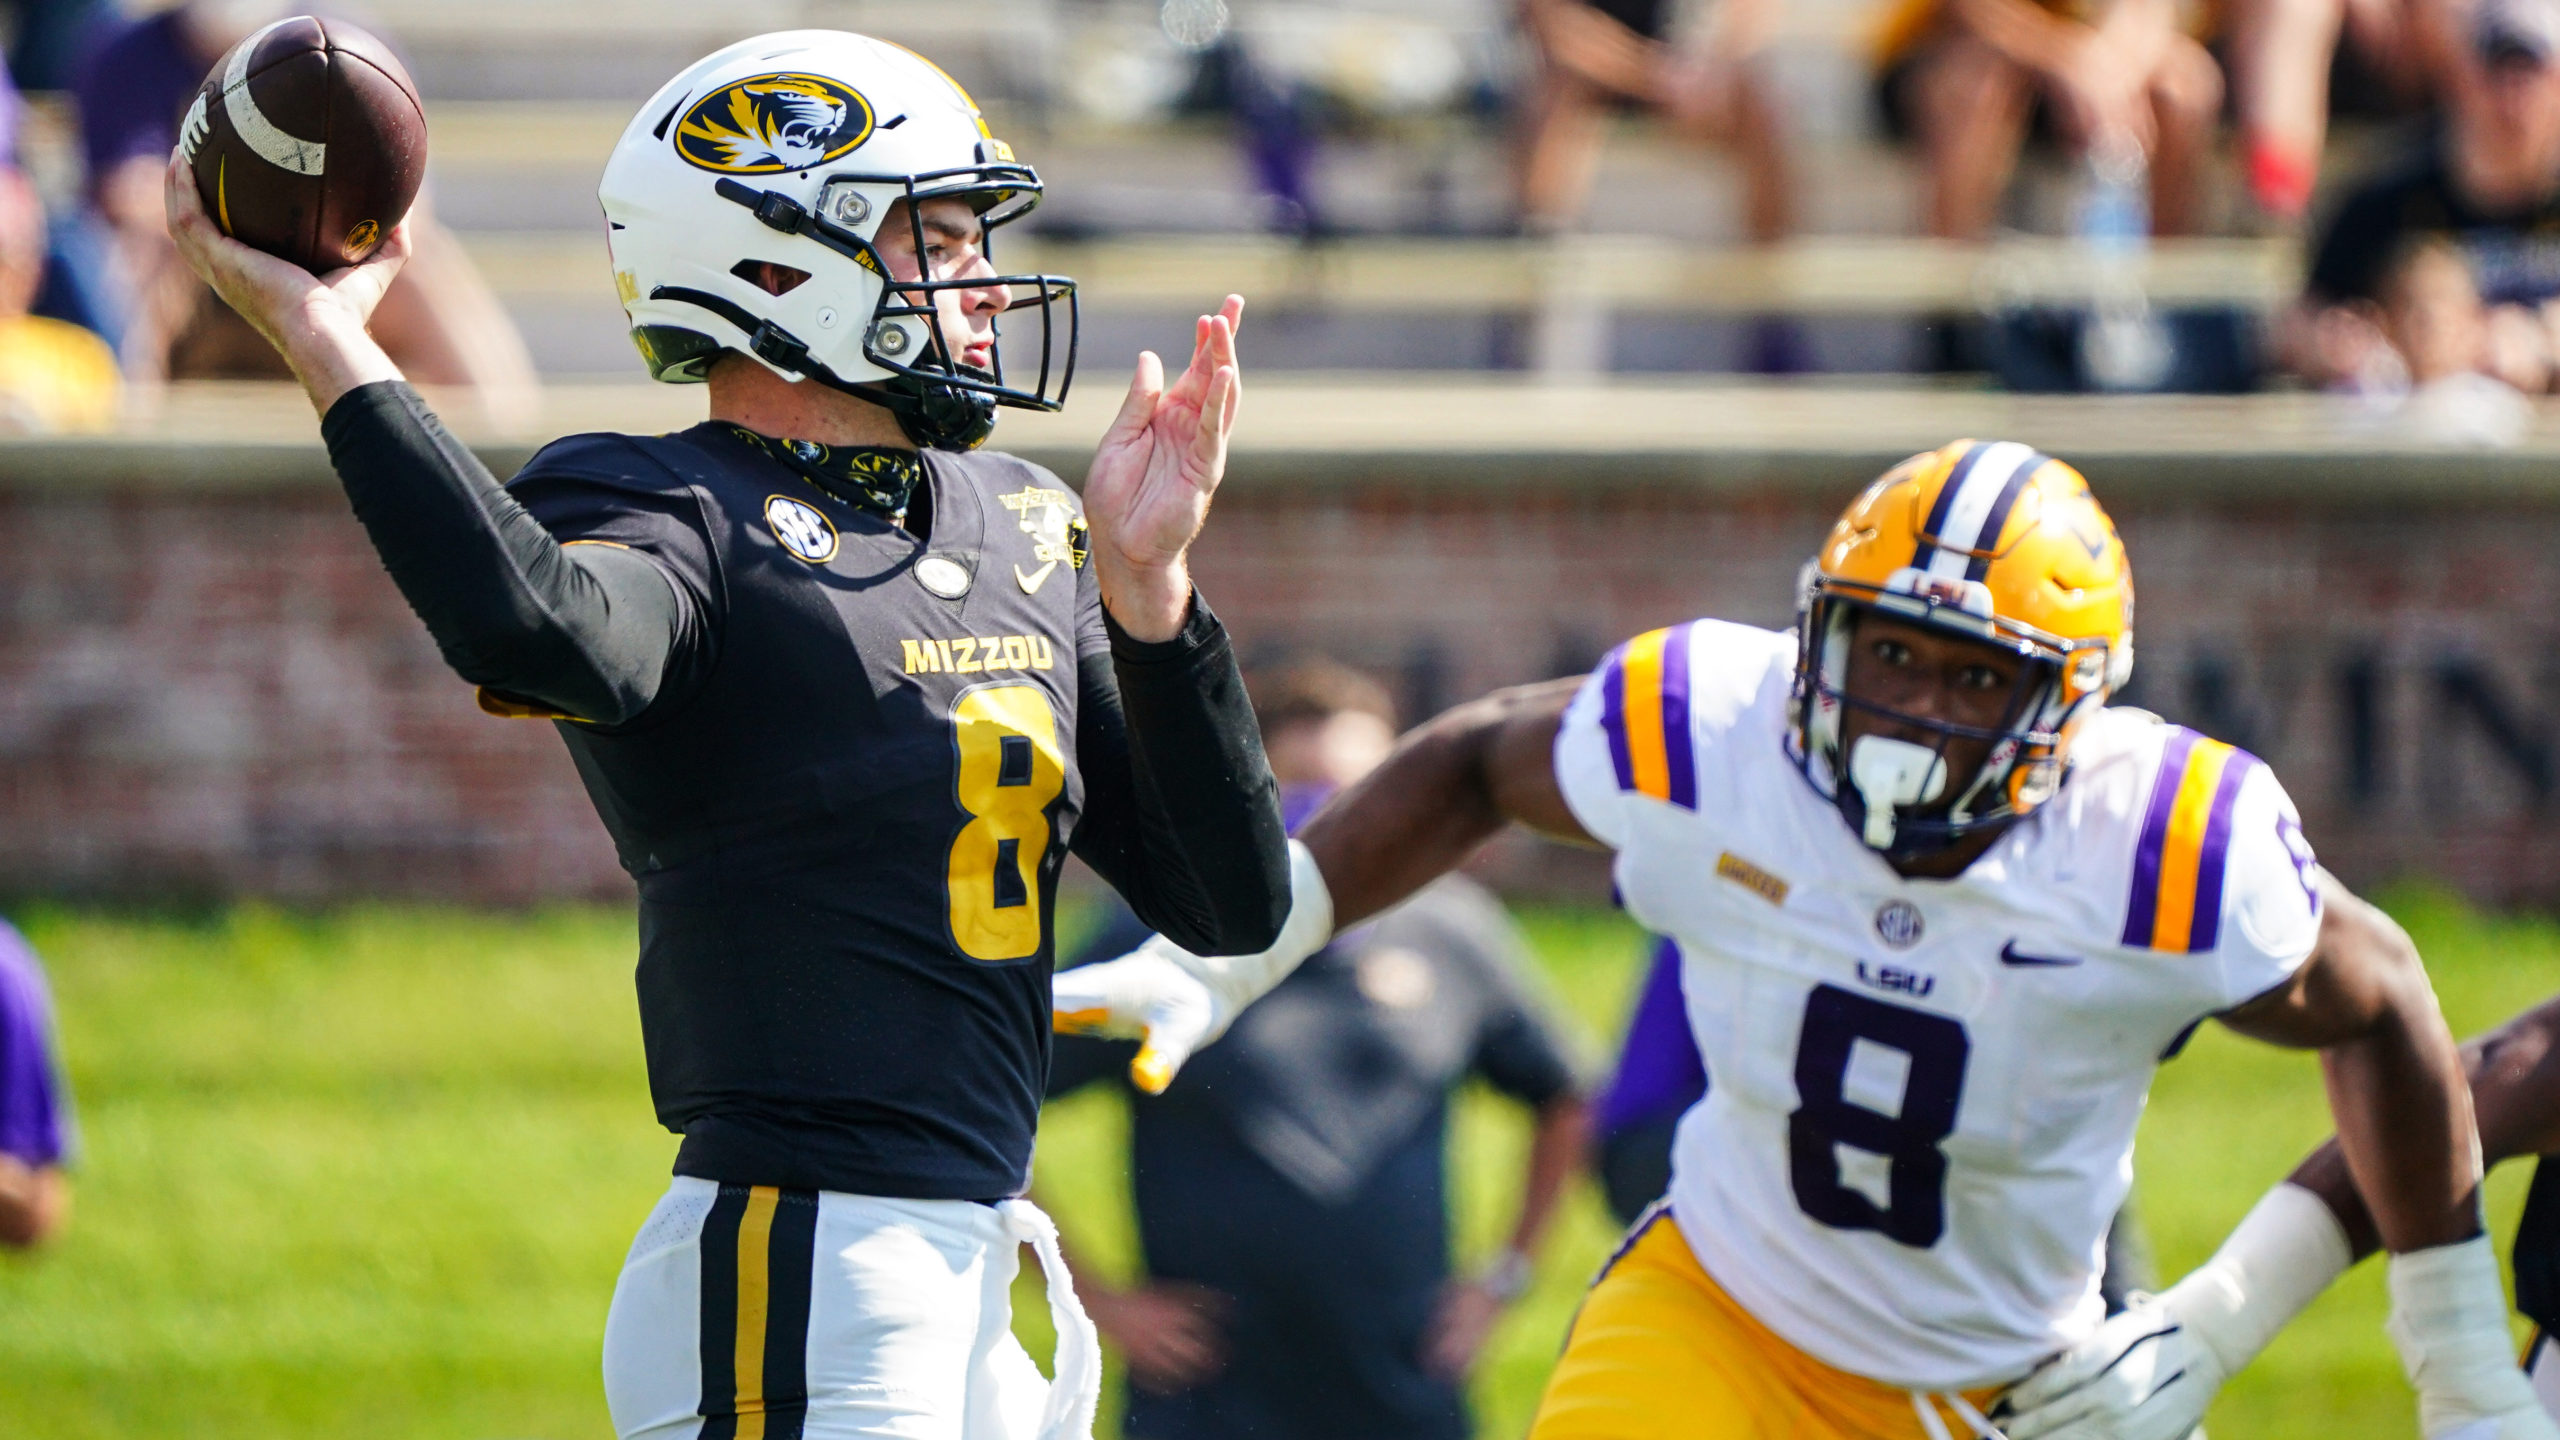 Connor Bazelak QB Missouri Tigers vs LSU Week 6 2020